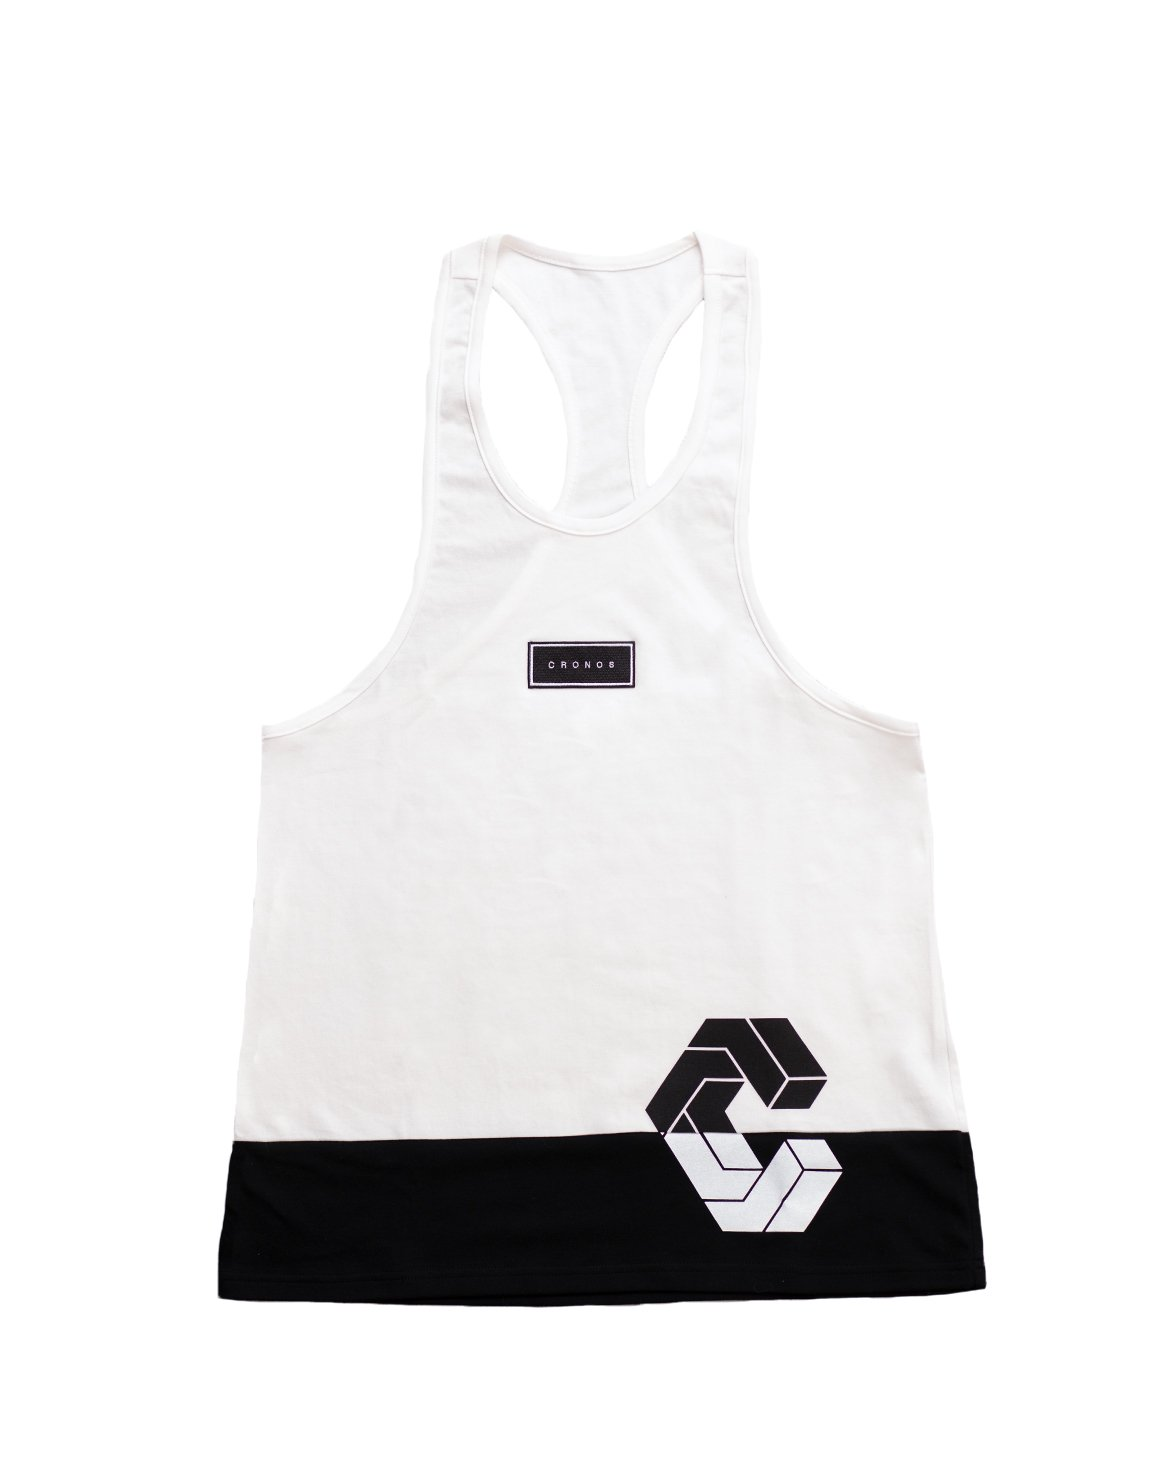 <img class='new_mark_img1' src='https://img.shop-pro.jp/img/new/icons55.gif' style='border:none;display:inline;margin:0px;padding:0px;width:auto;' />CRONOS BOX MODE SIDE LOGO TANK TOP【WHITE×BLACK】